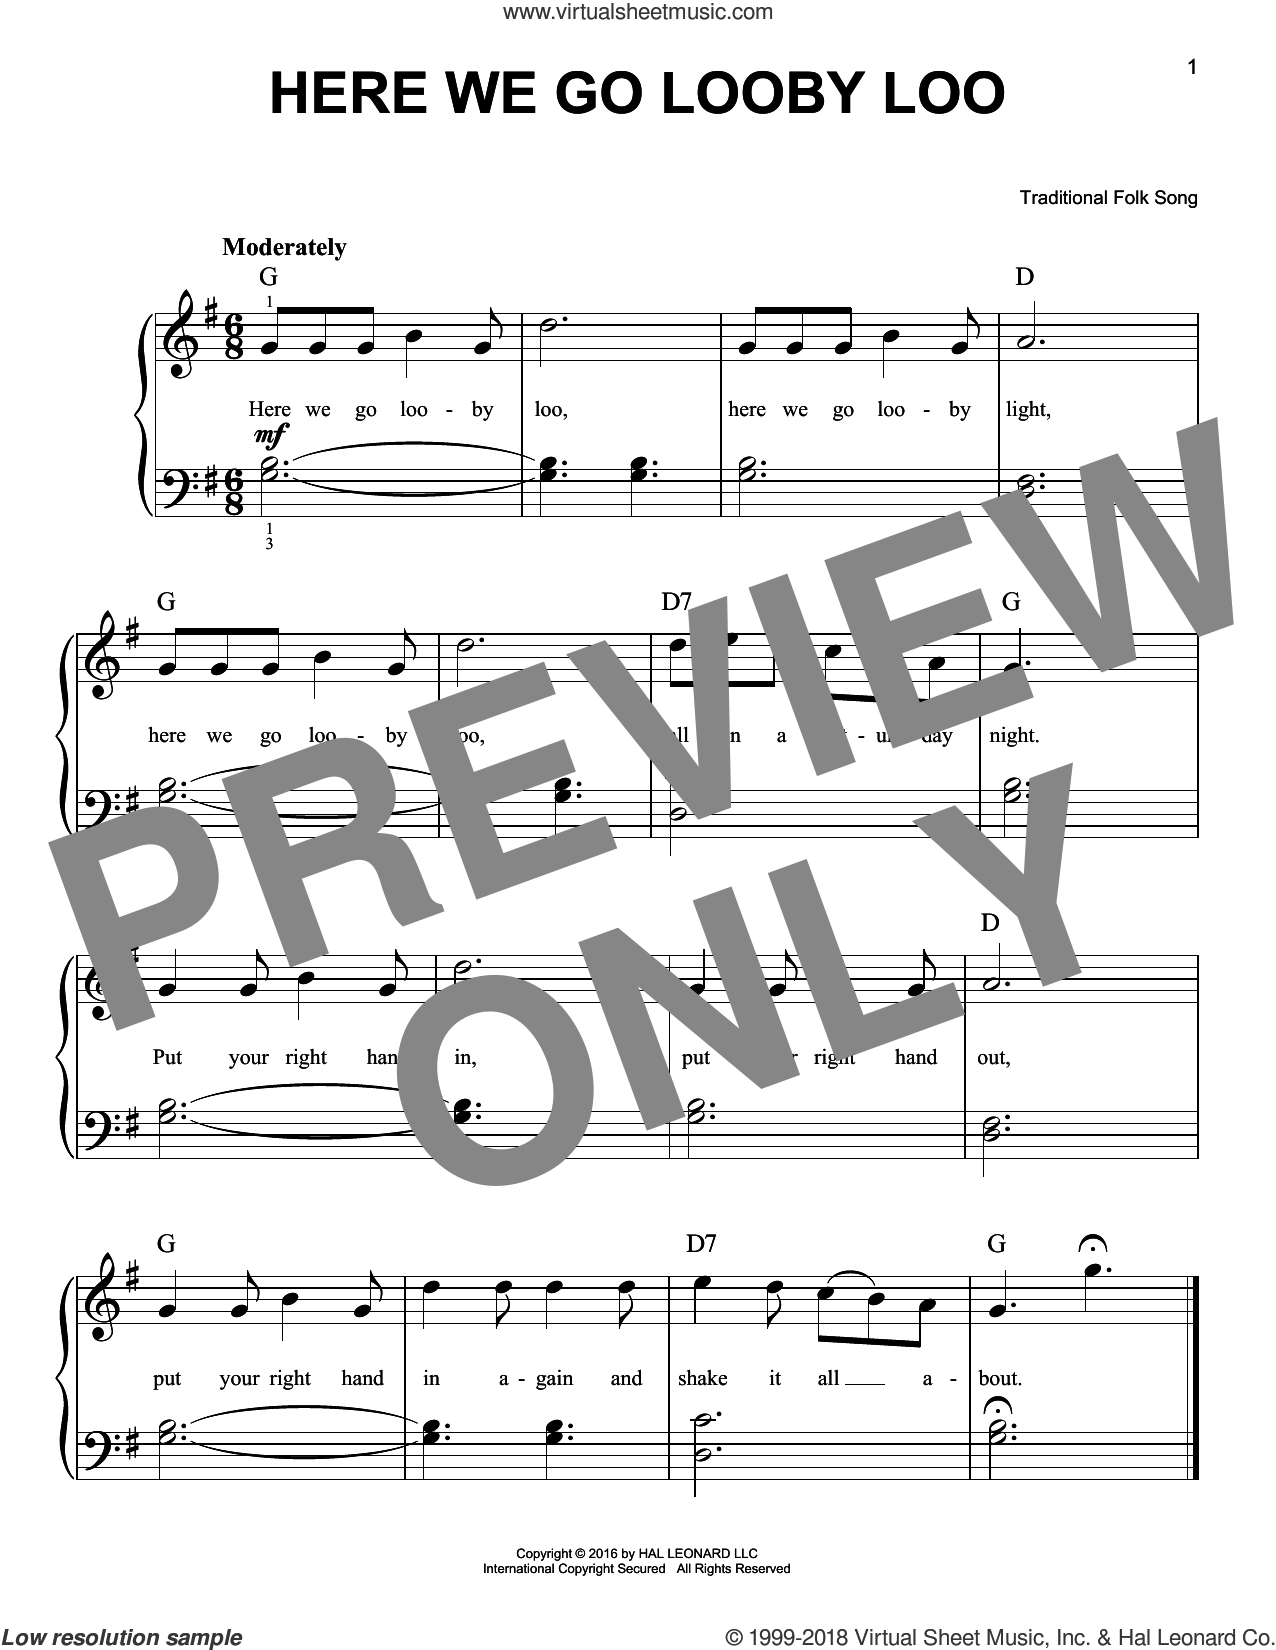 Here We Go Looby Loo sheet music for piano solo by Traditional Folk Song. Score Image Preview.